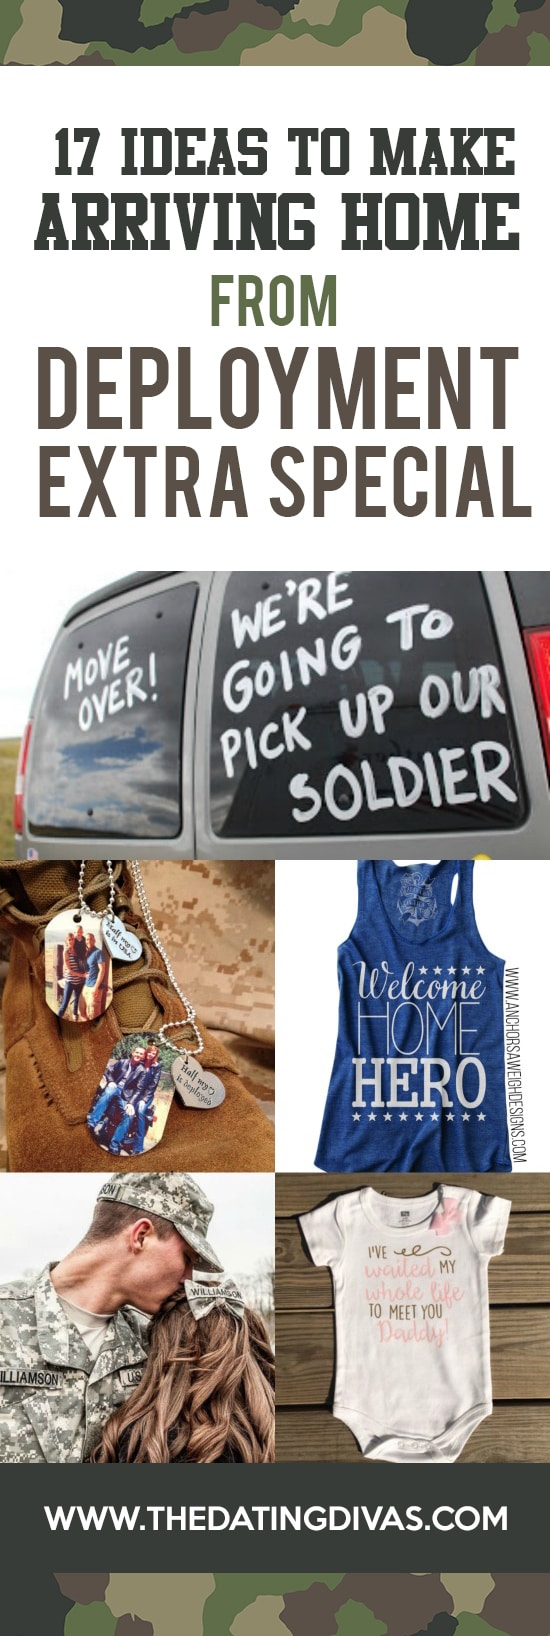 Military Week Coming Home